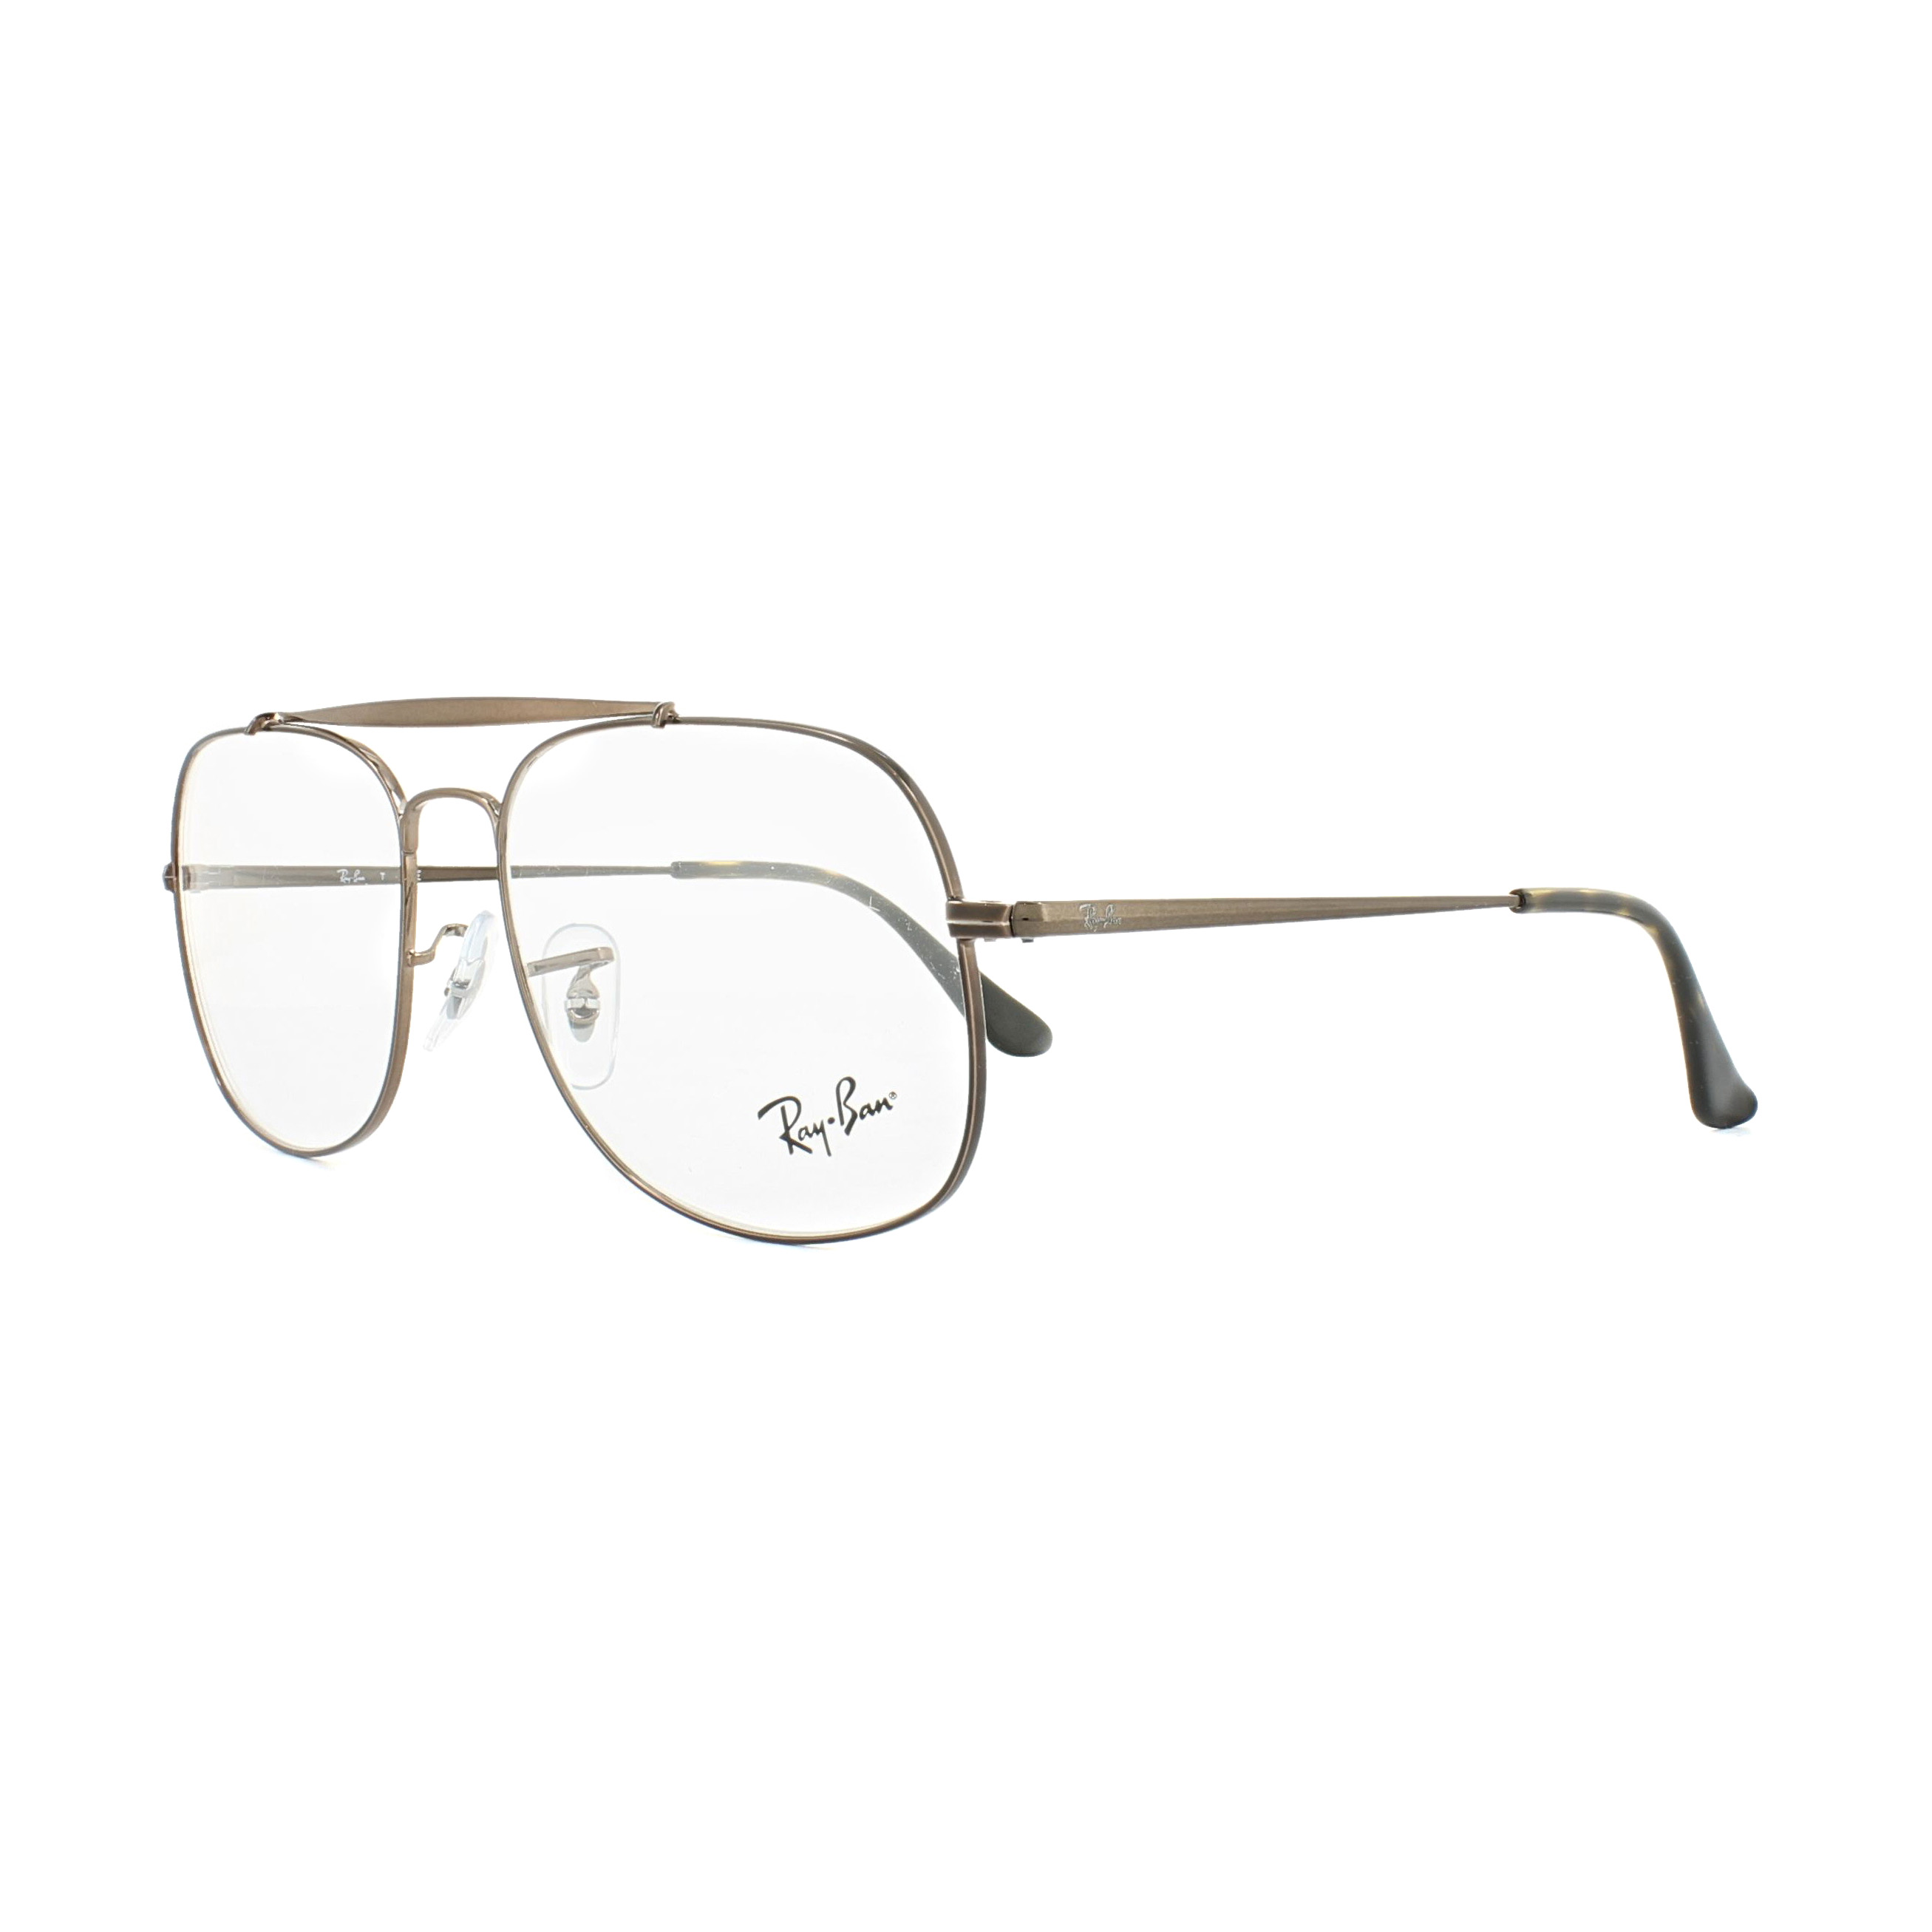 5c207d09f4 Sentinel Ray-Ban Glasses Frames 6389 The General 2531 Light Brown 55mm Mens